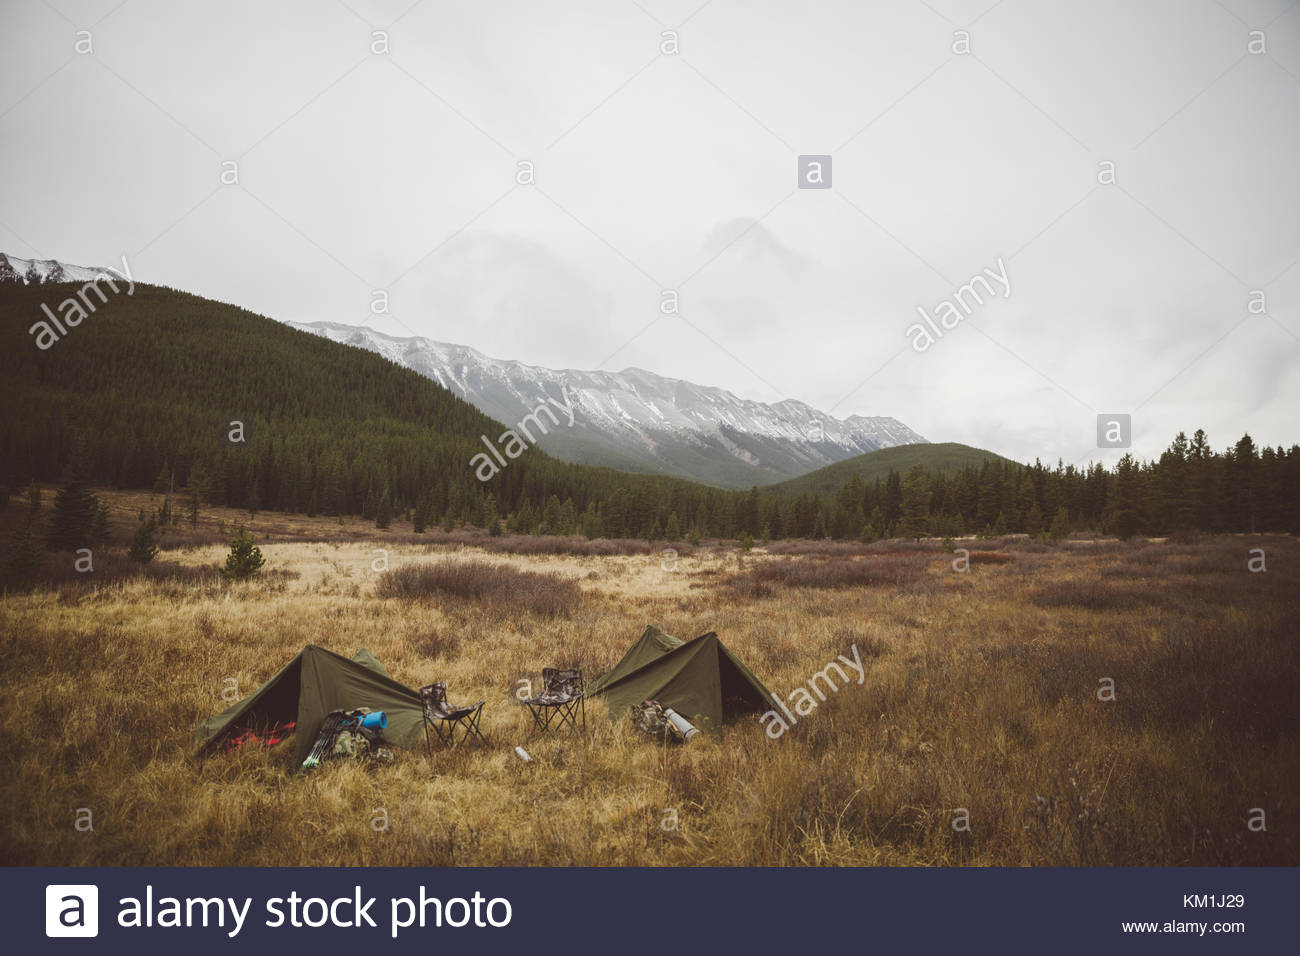 Hunting campsite tents in remote field below mountains - Stock Image